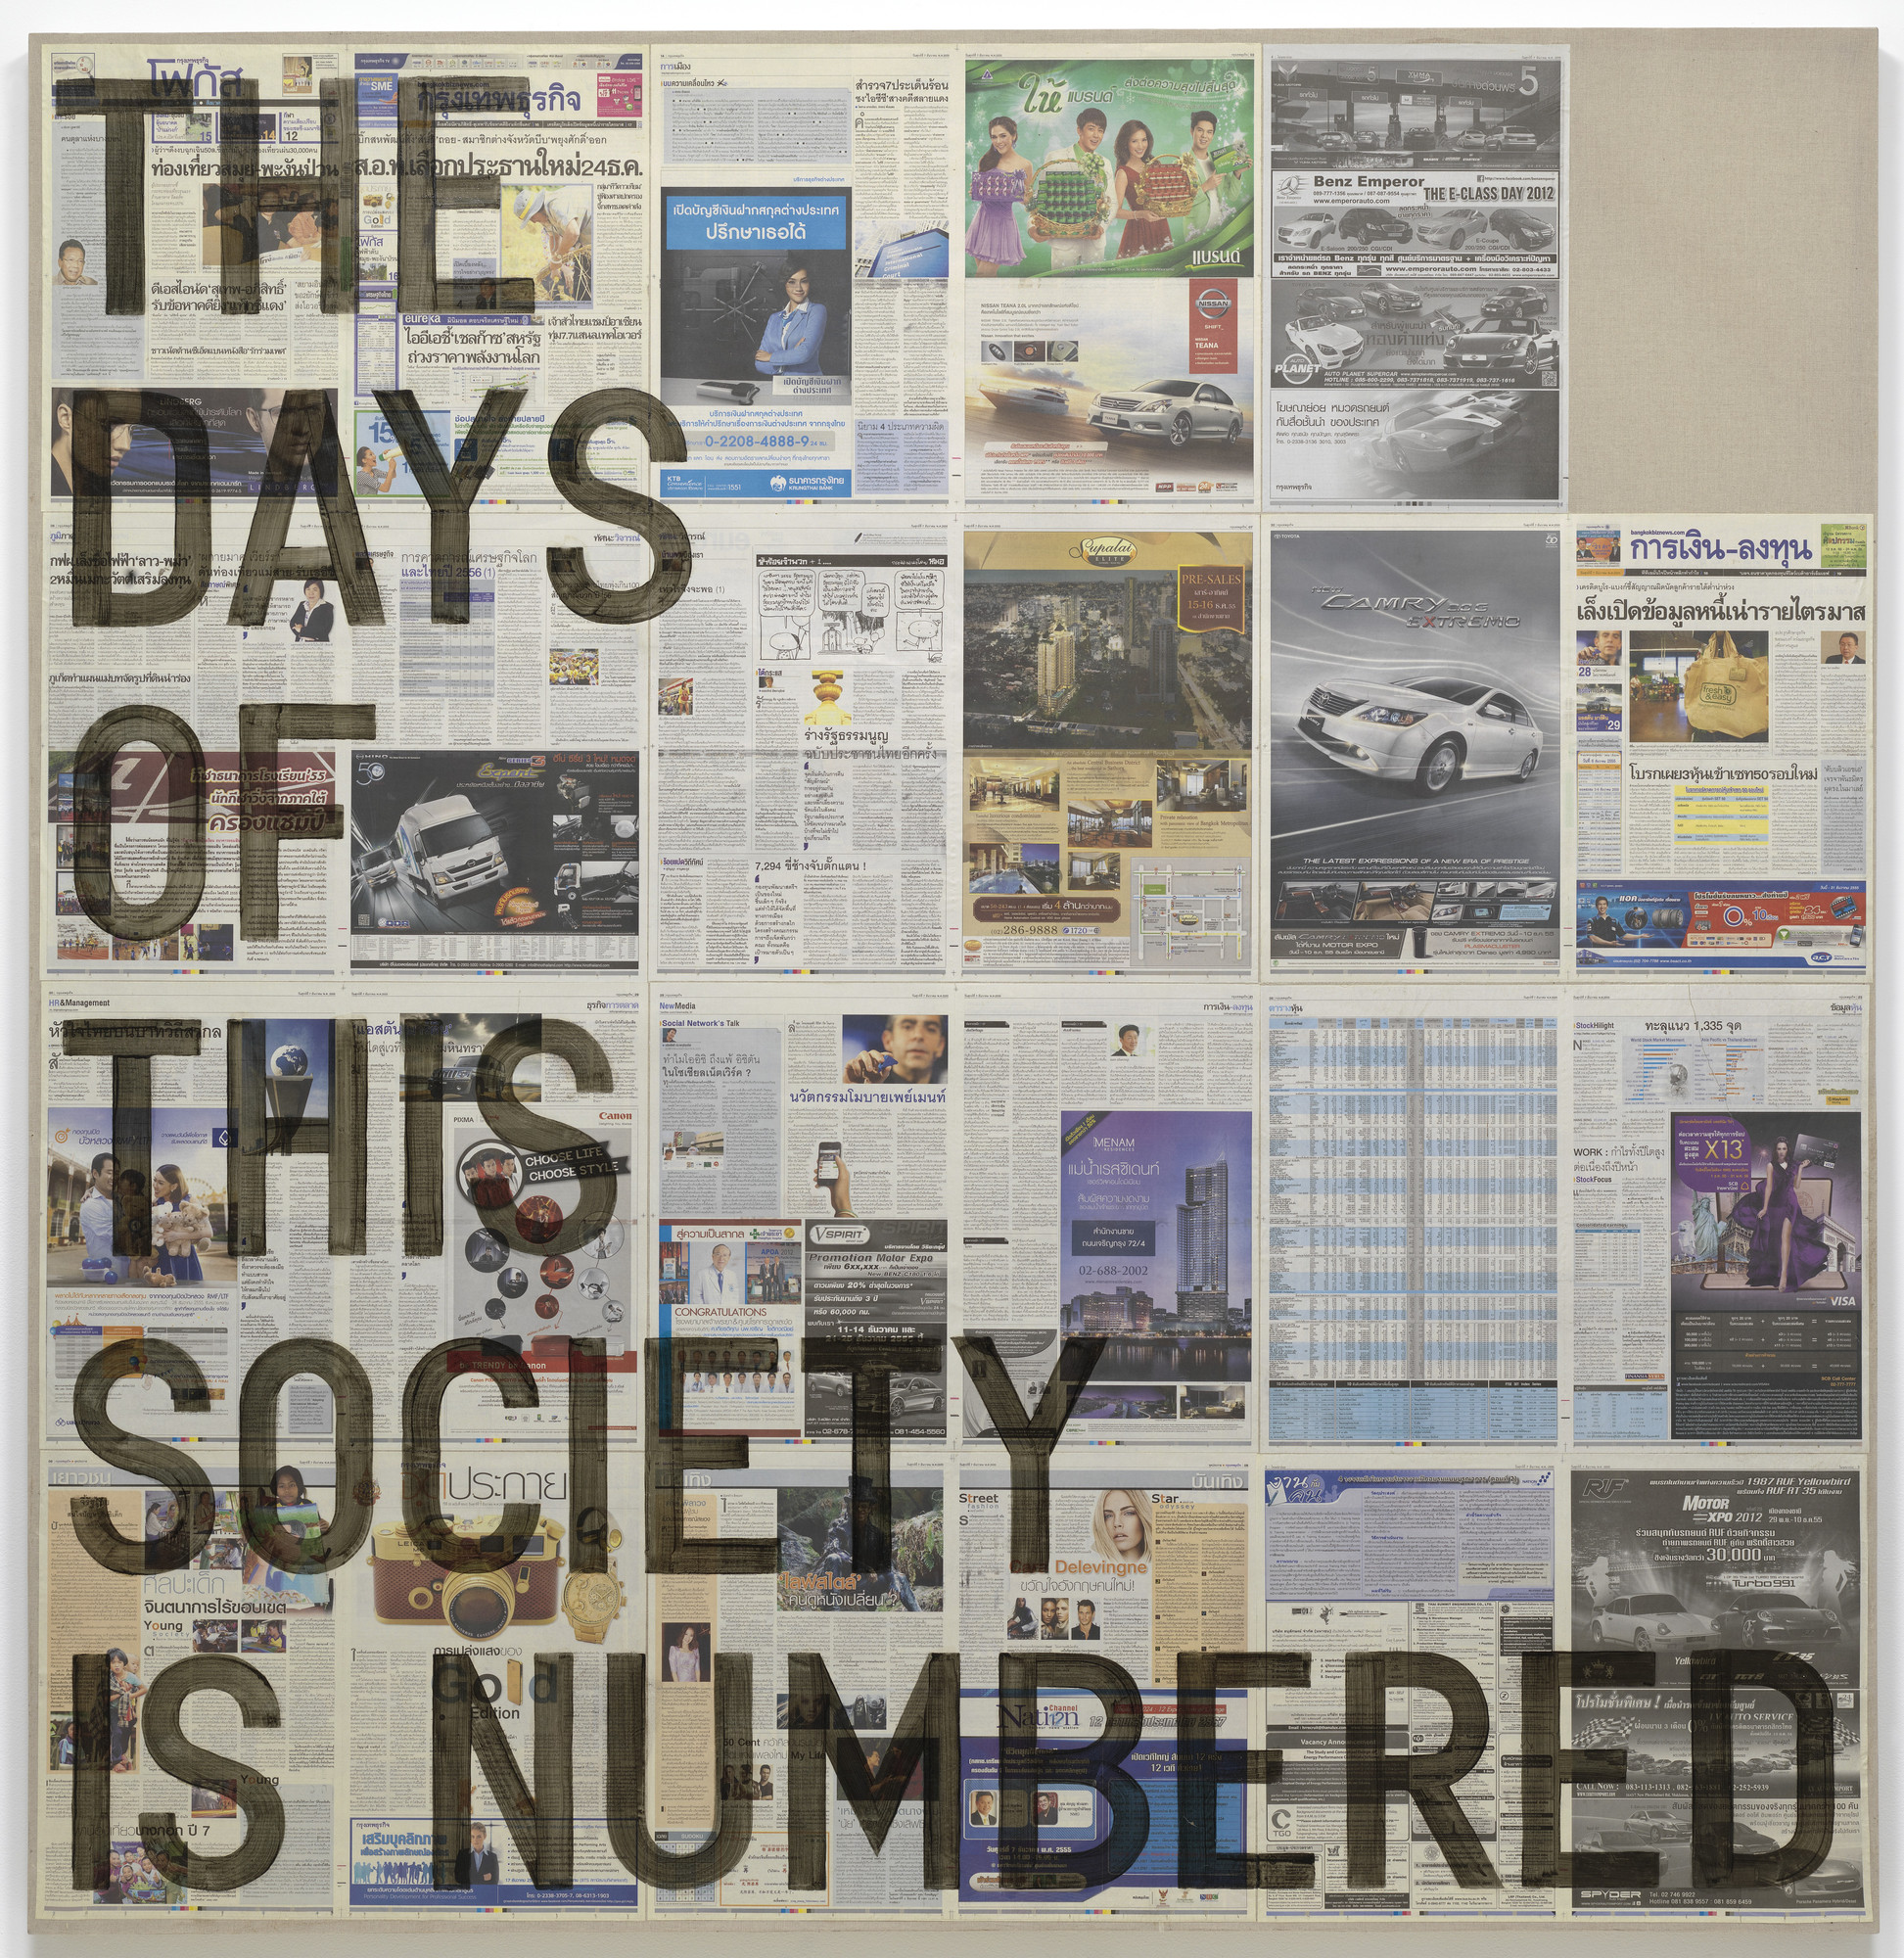 Rirkrit Tiravanija. untitled (the days of this society is numbered / December 7, 2012). 2014